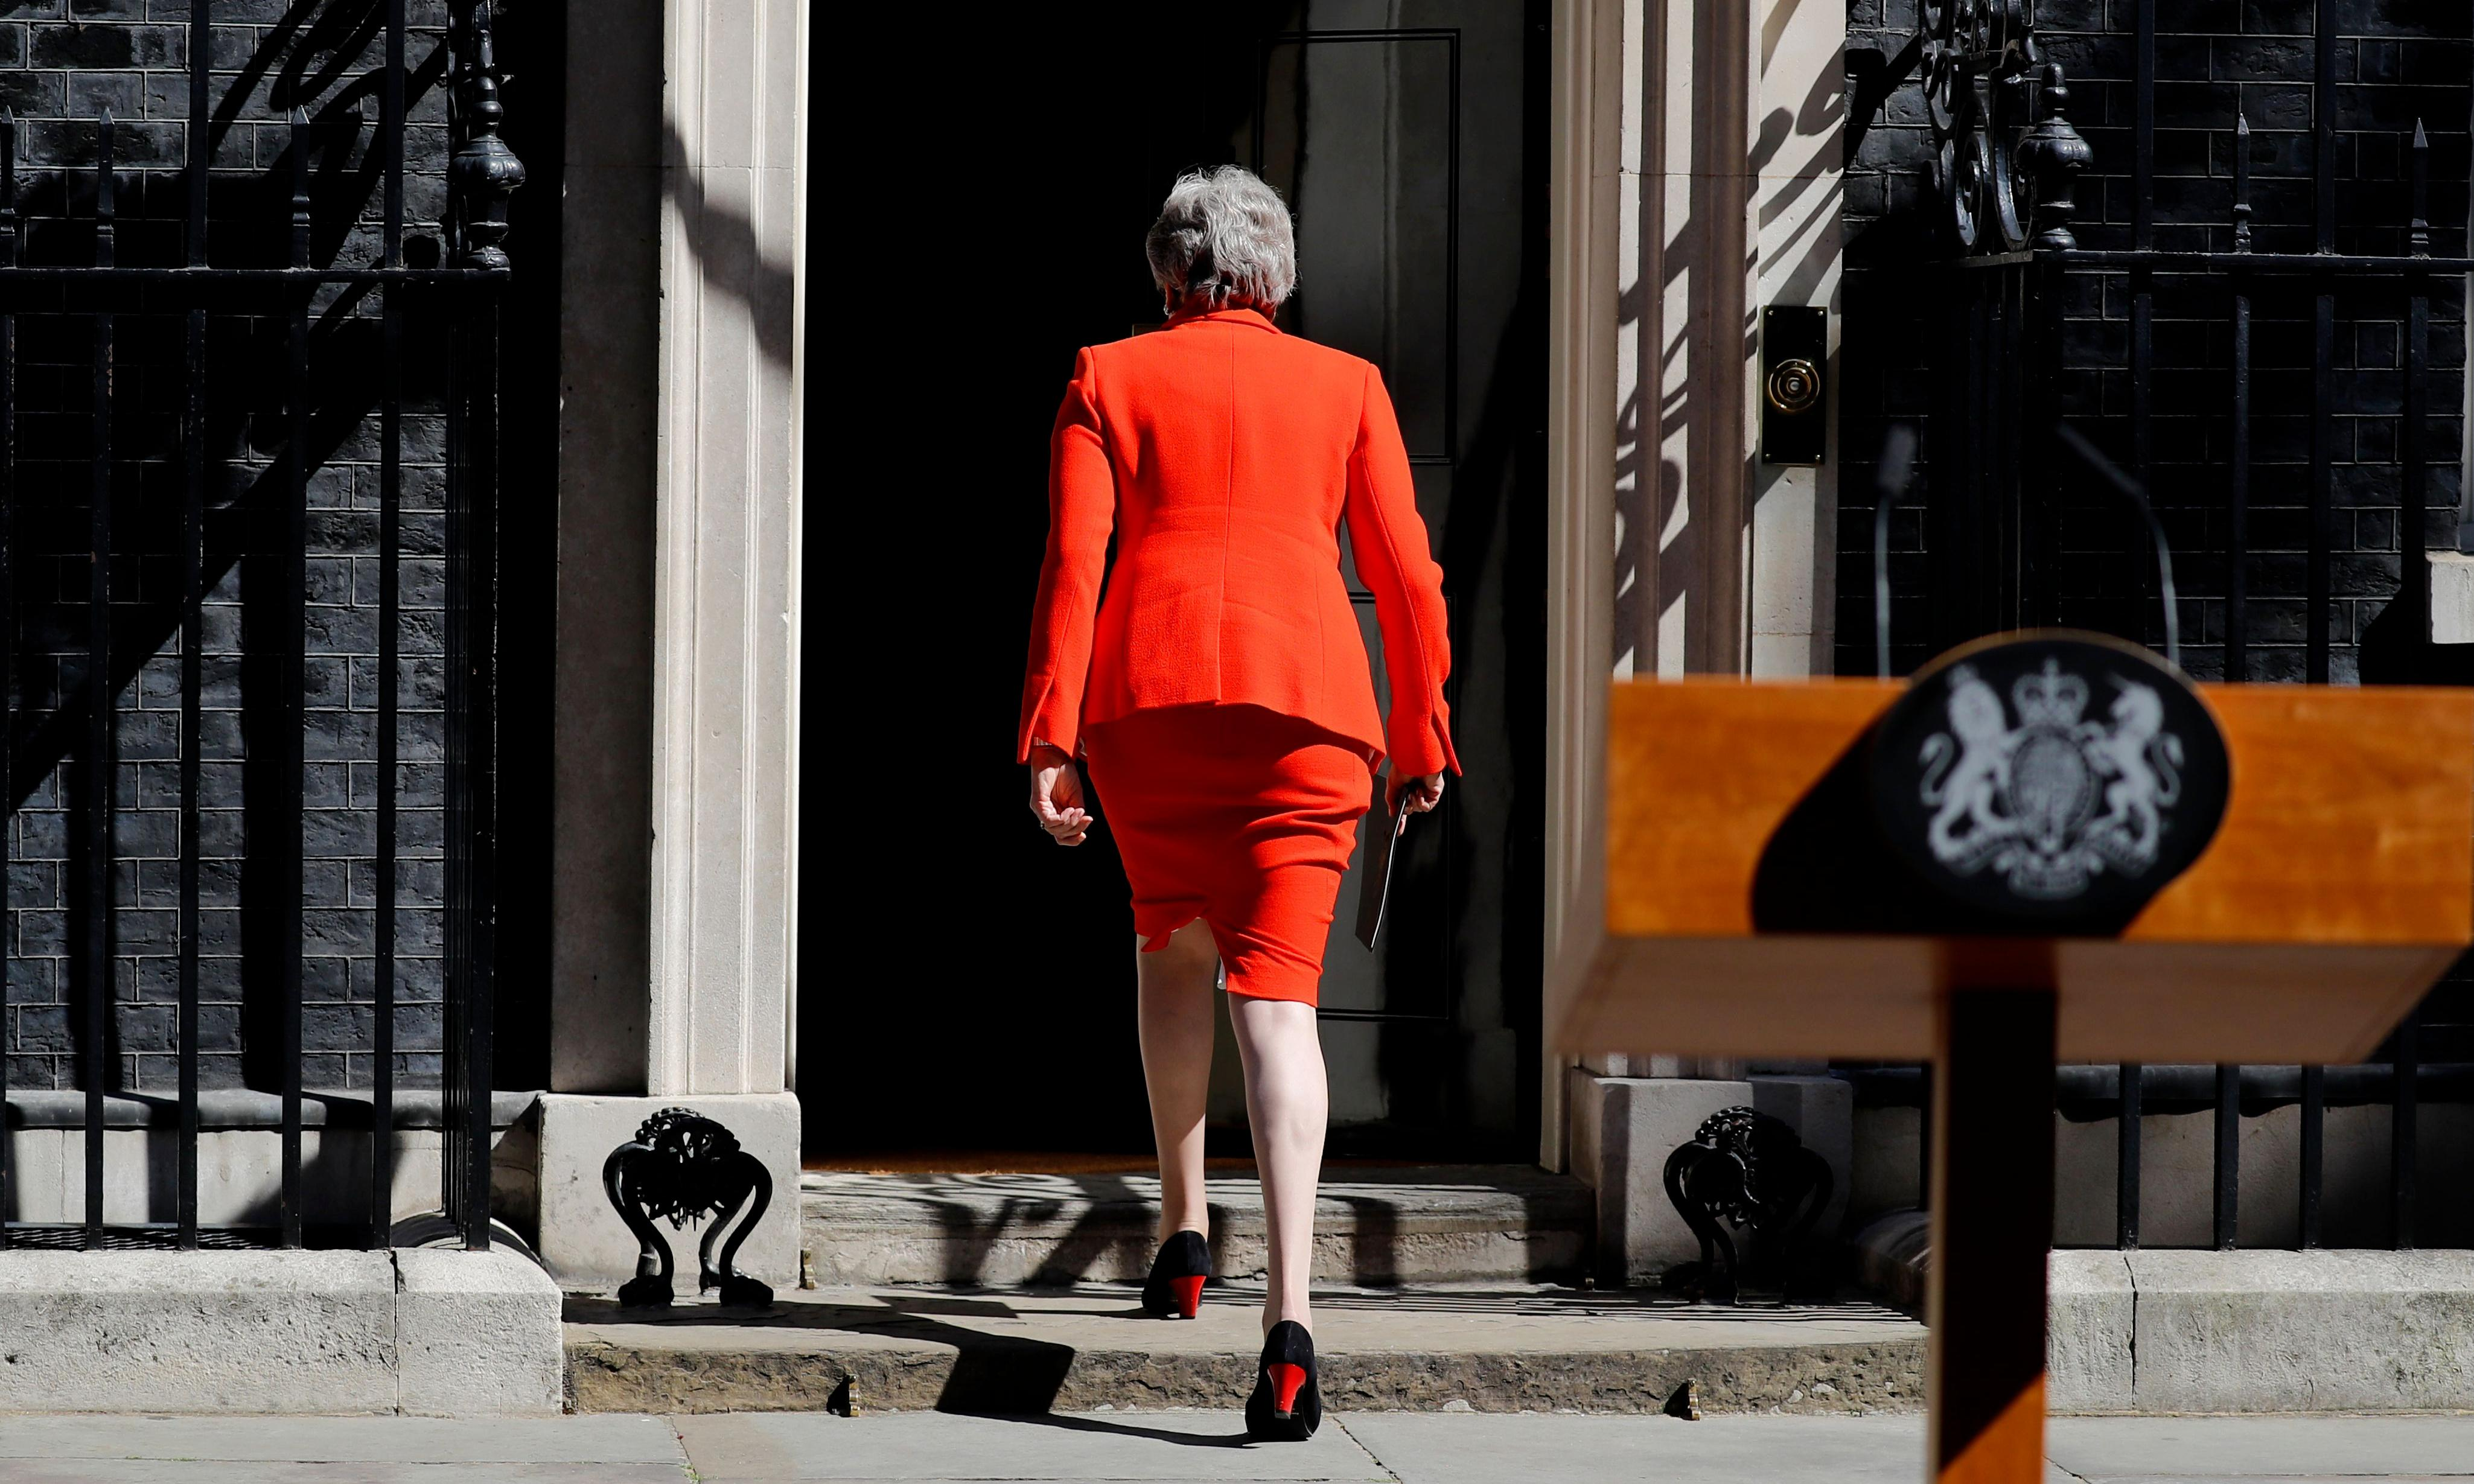 As she says goodbye, Maybot finally shows her humanity